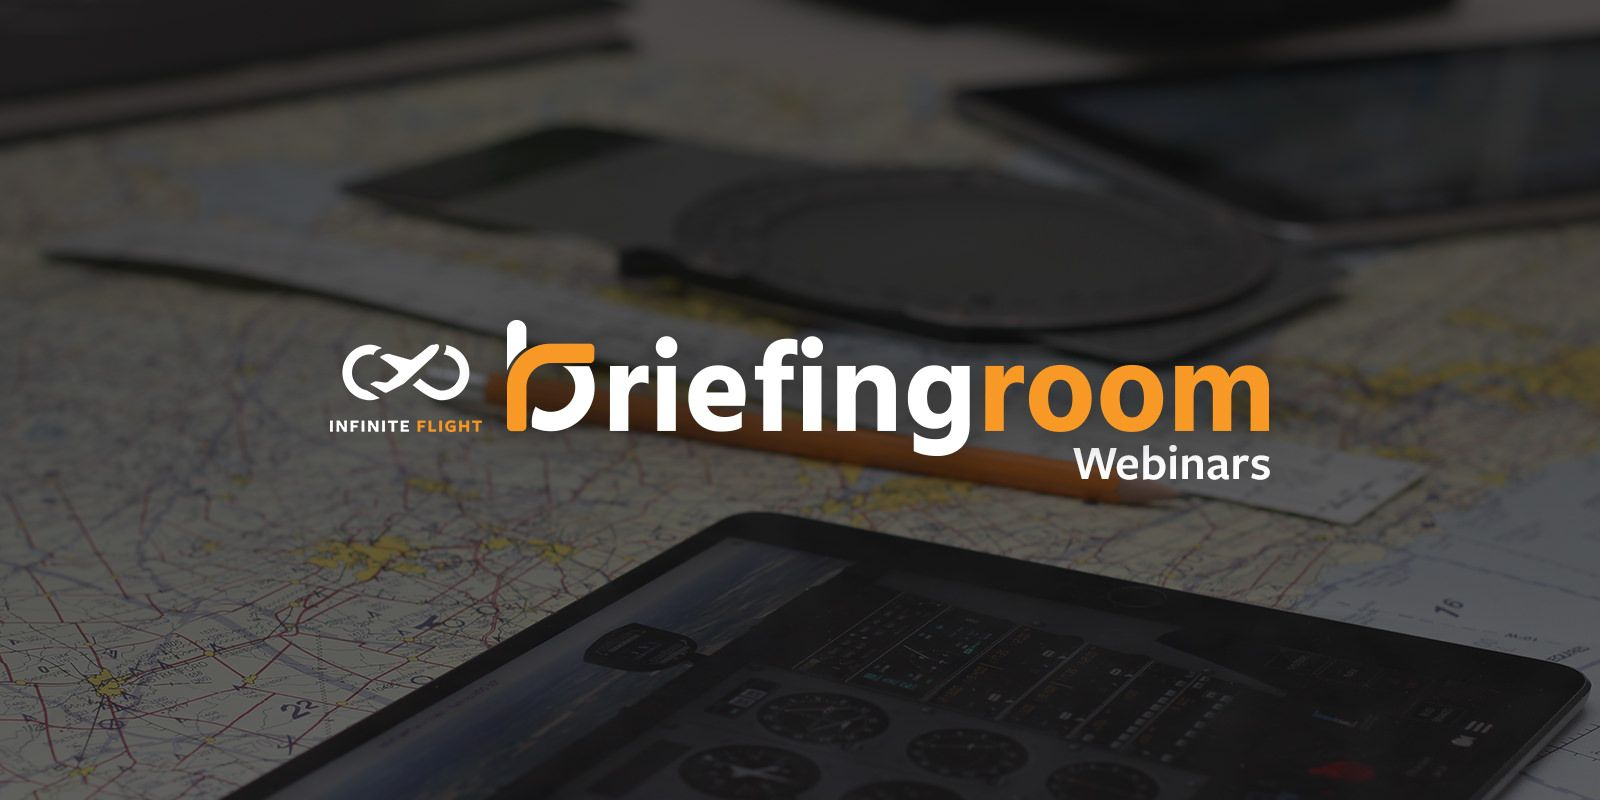 Infinite Flight Briefing Room Webinars